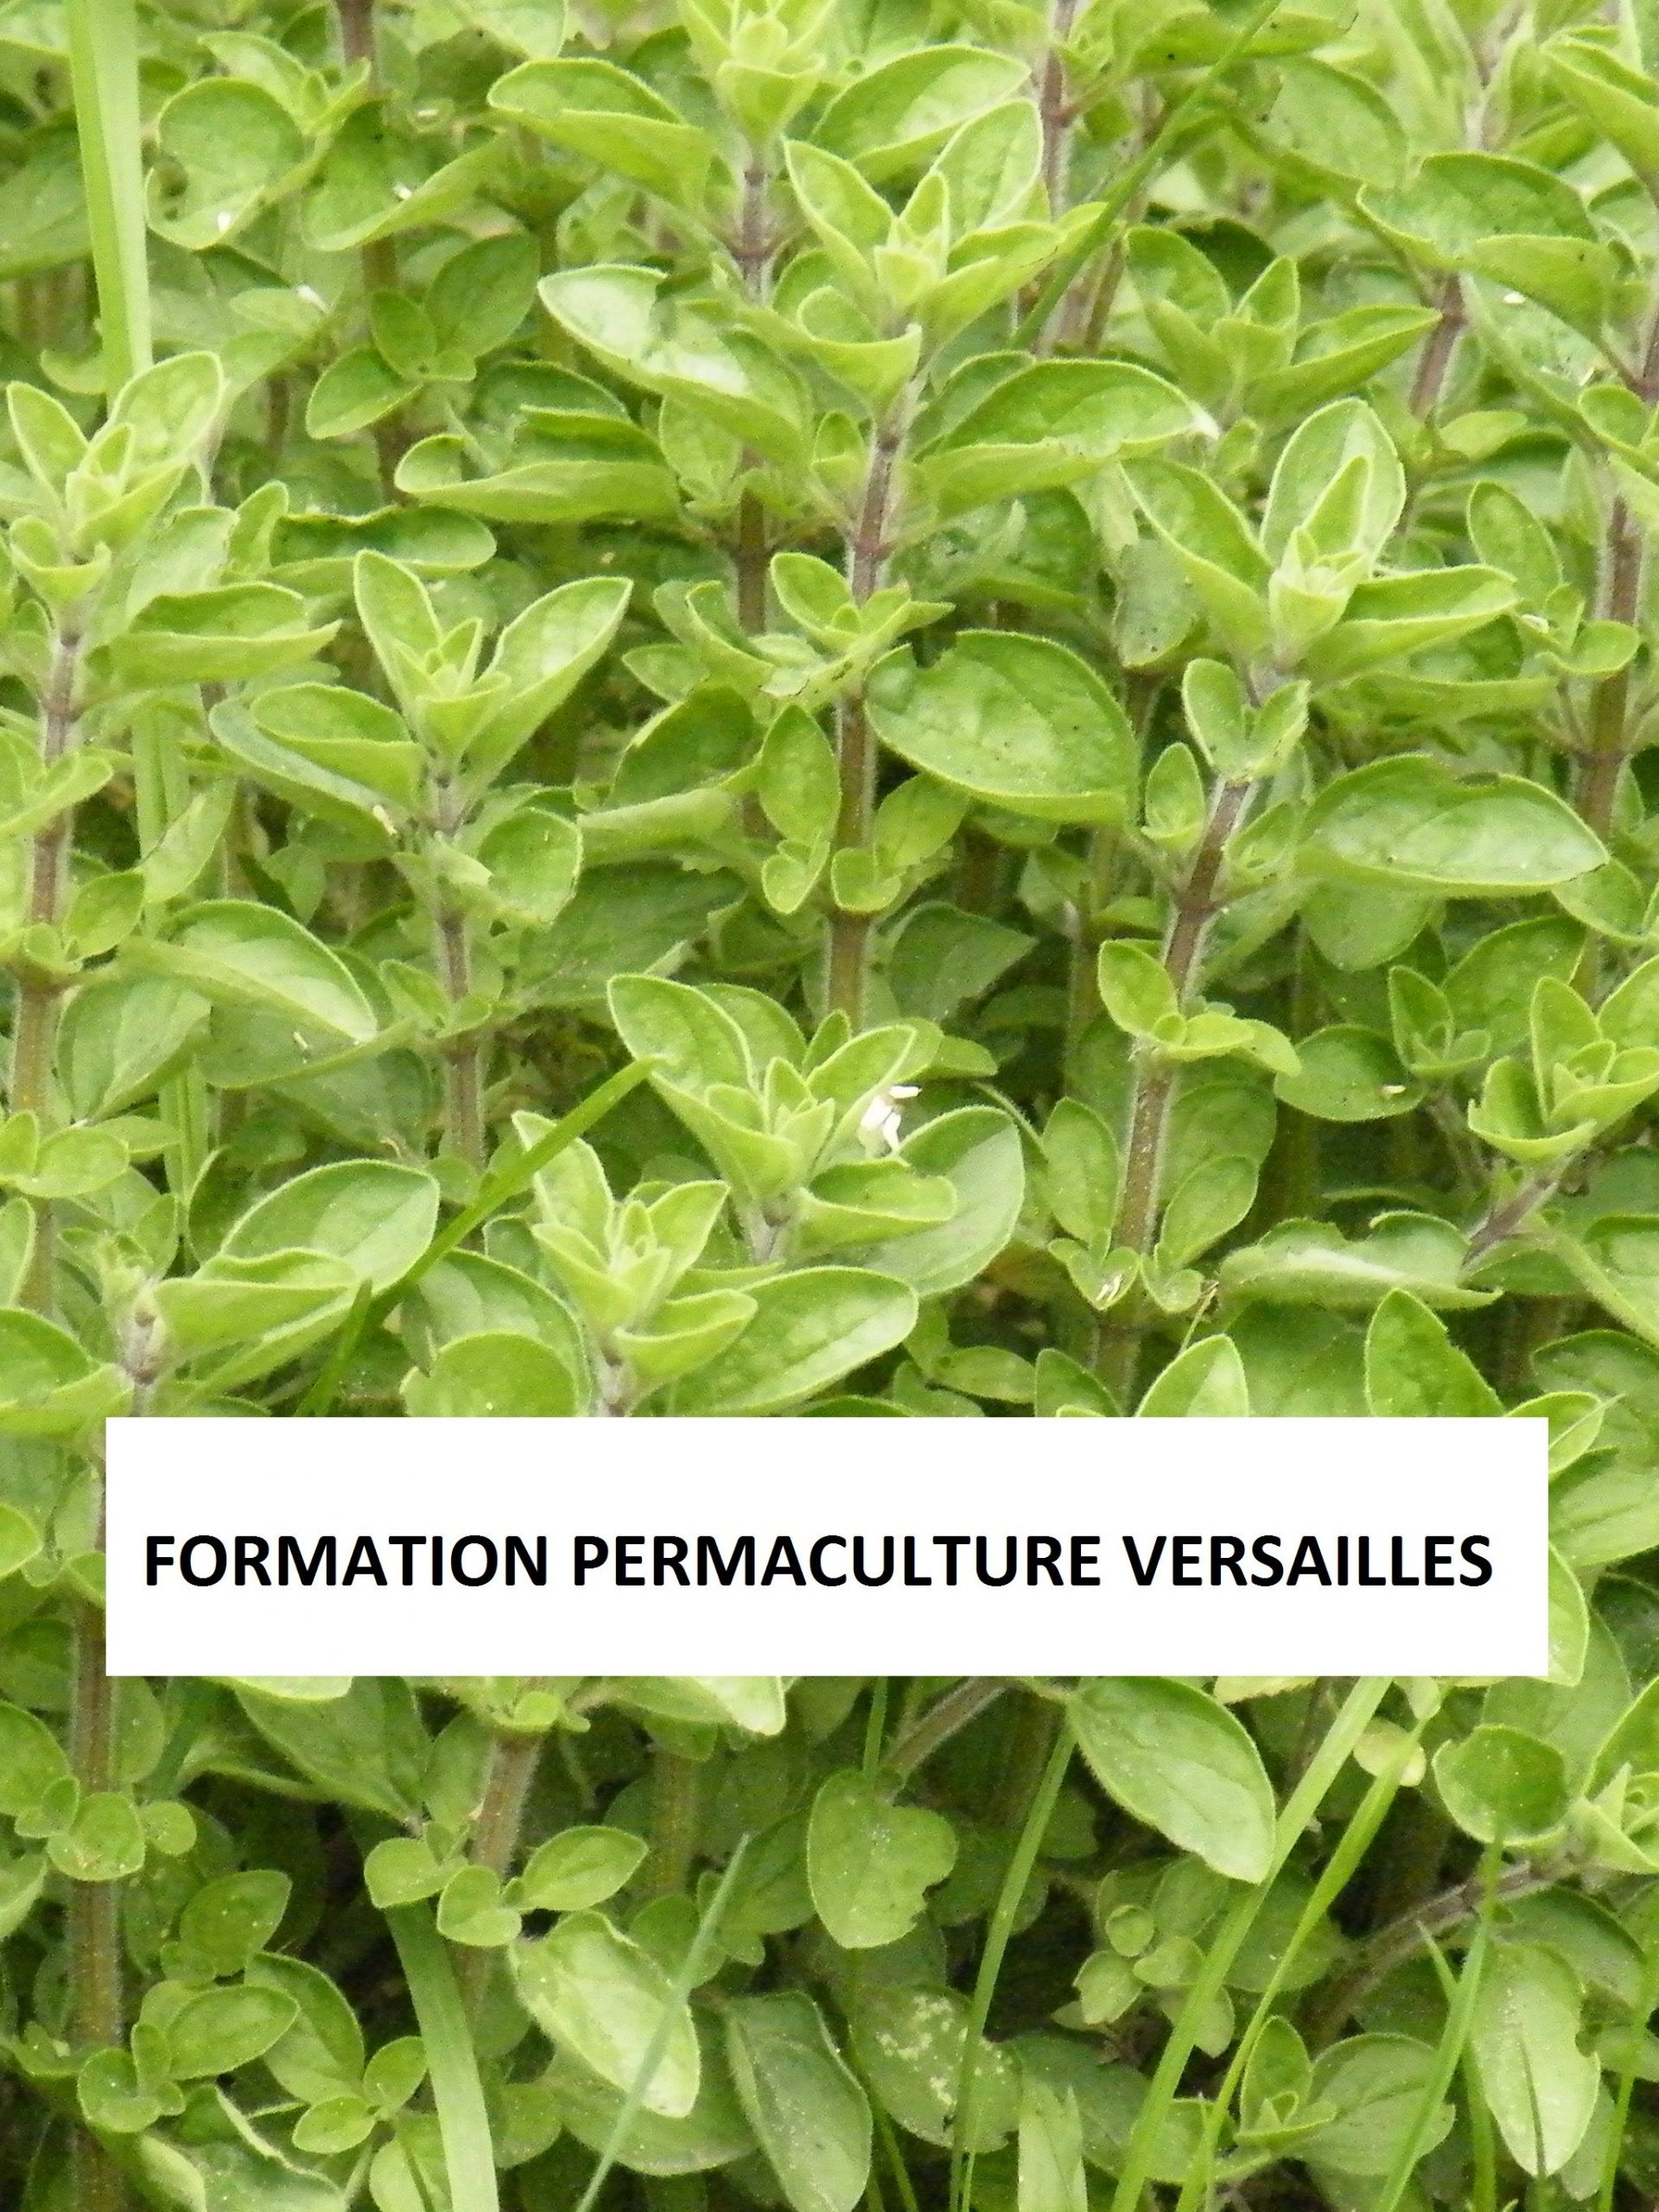 FORMATION PERMACULTURE VERSAILLES